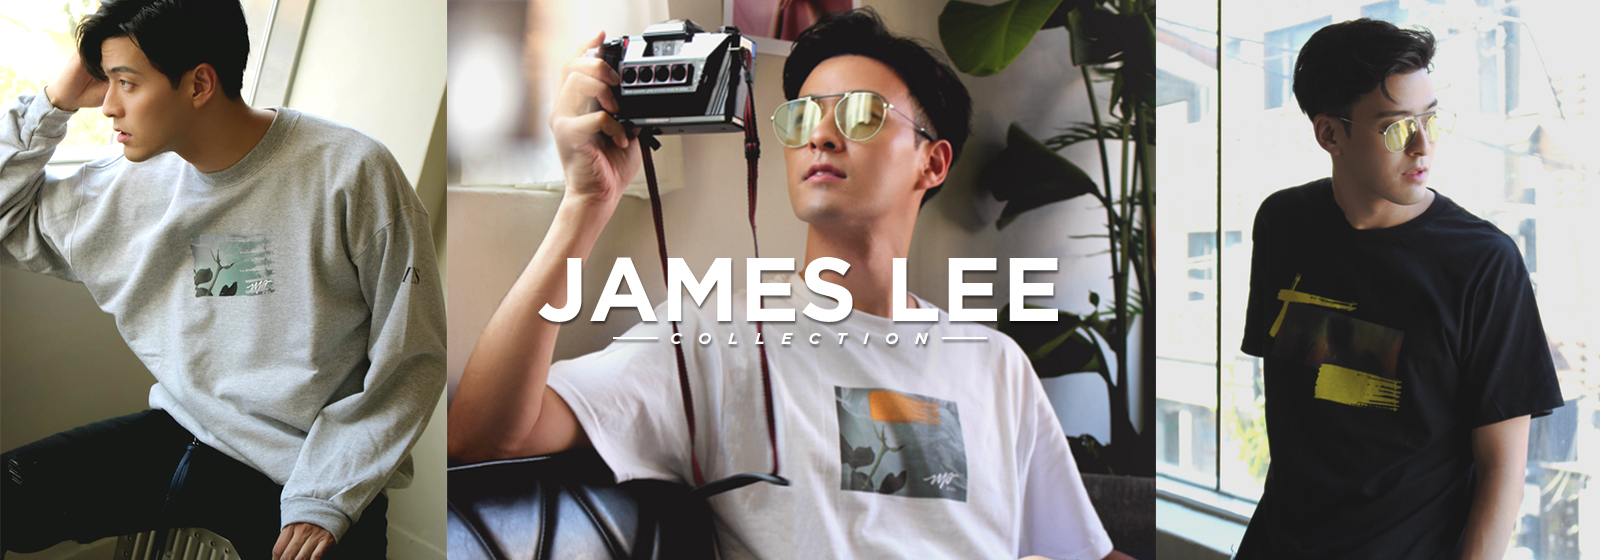 James Lee Collection Store